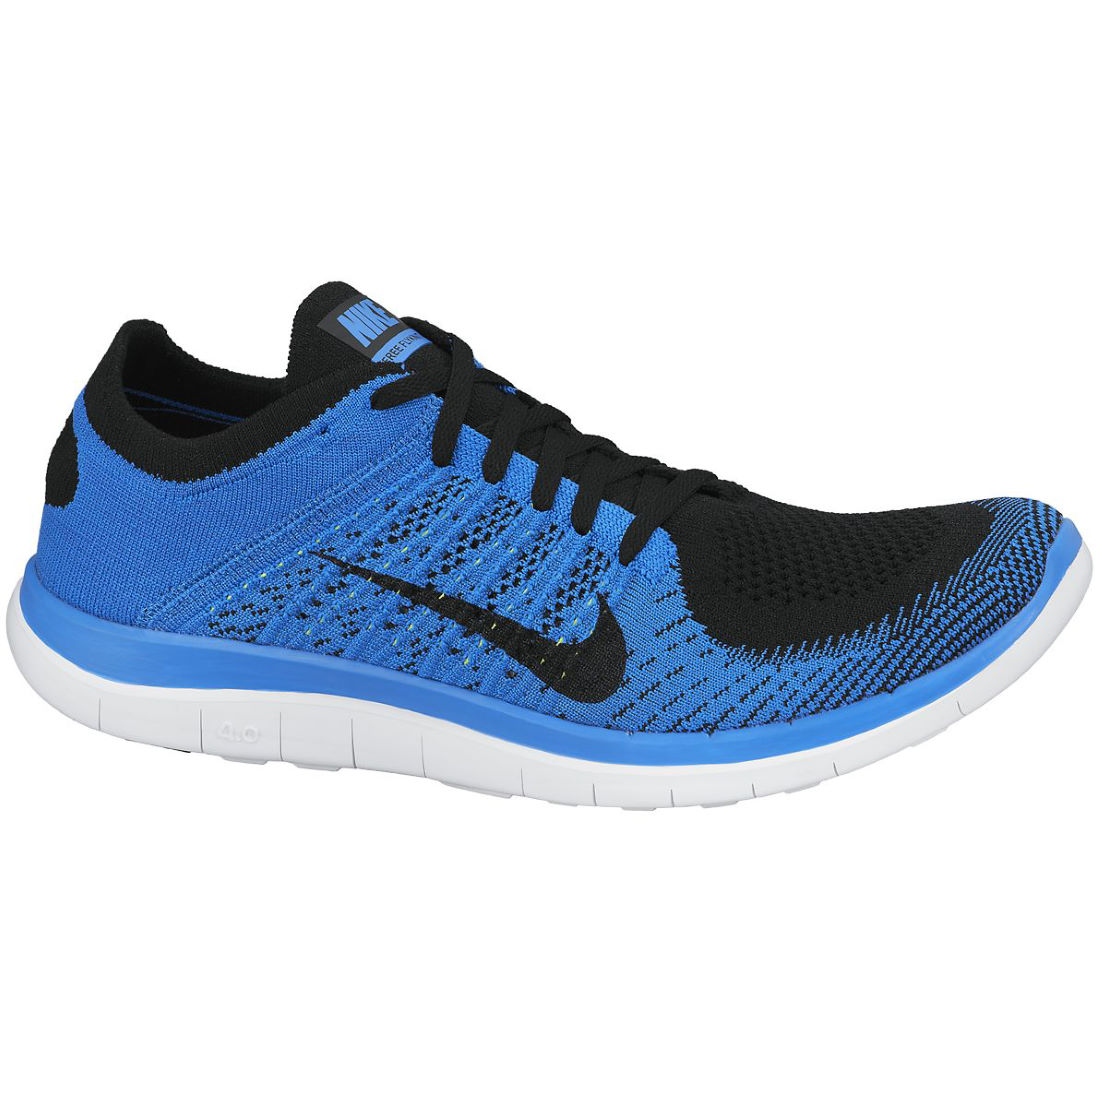 wiggle nike free 4 0 flyknit shoes fa14 training running shoes. Black Bedroom Furniture Sets. Home Design Ideas